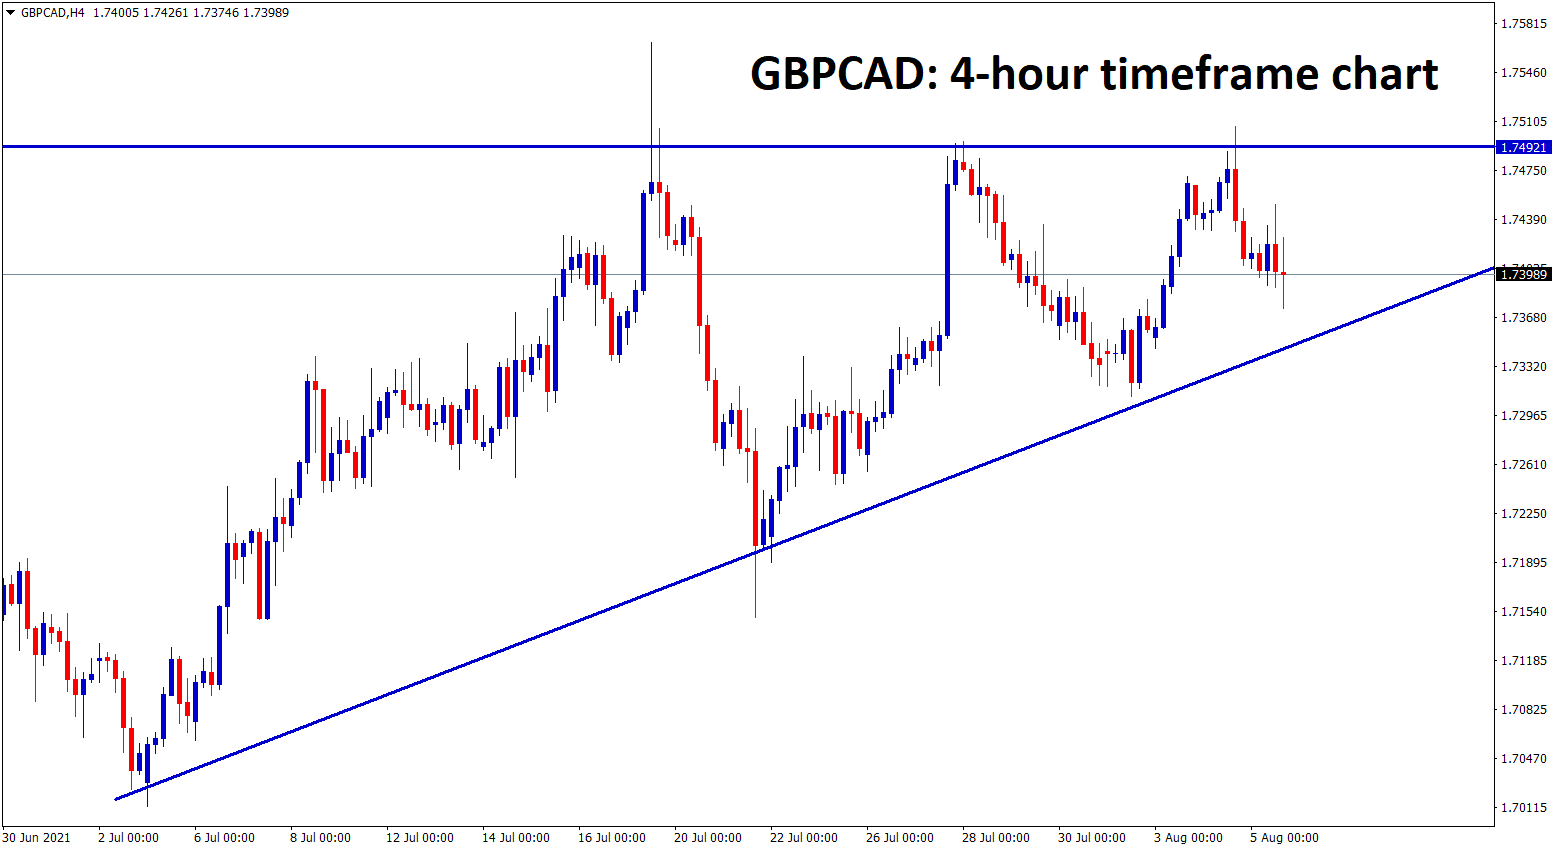 GBPCAD is moving in an Ascending Triangle Pattern wait for the breakout from this pattern